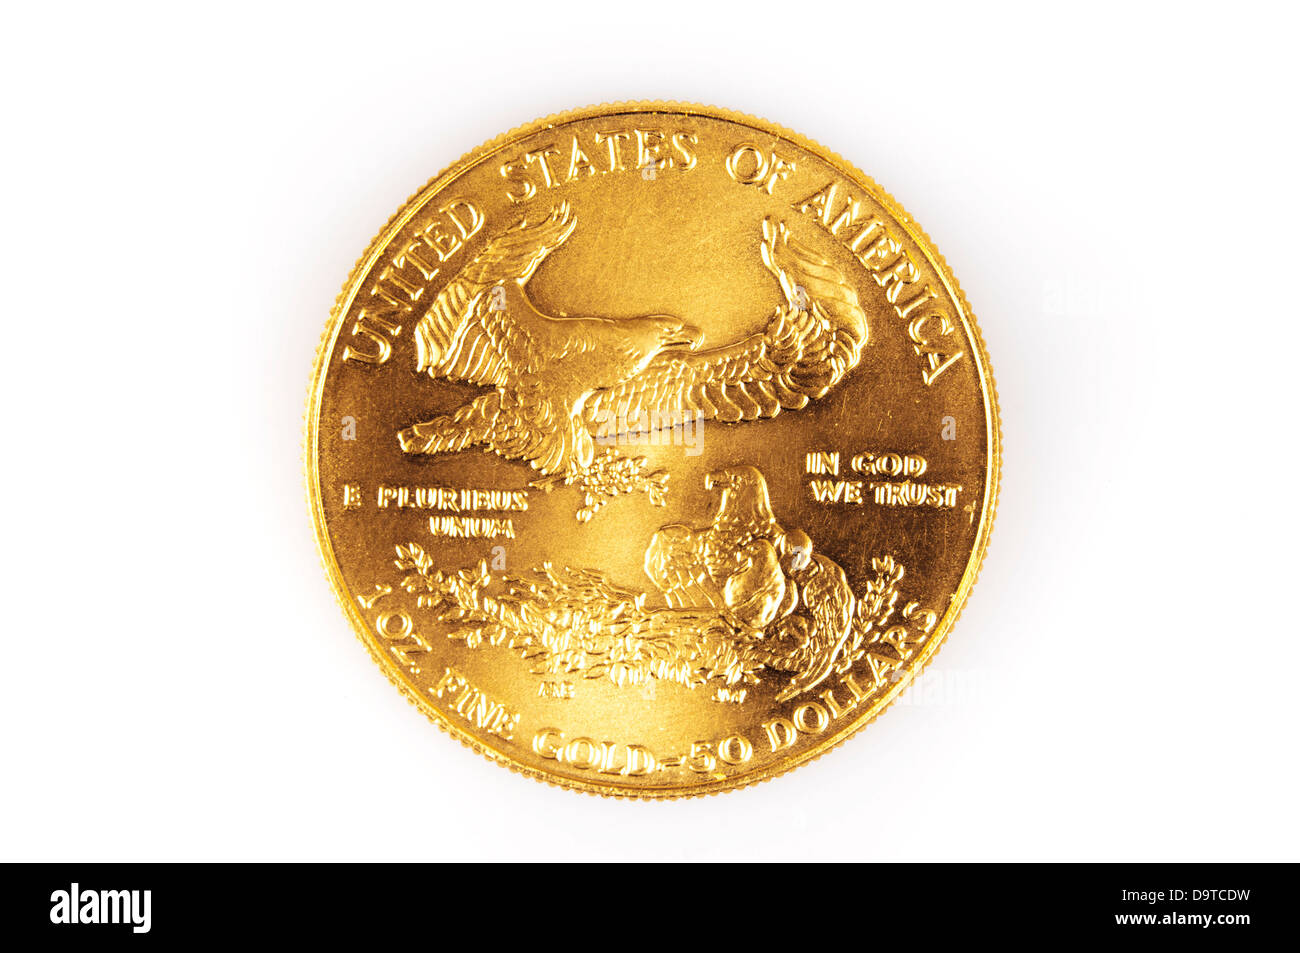 gold coin - Stock Image